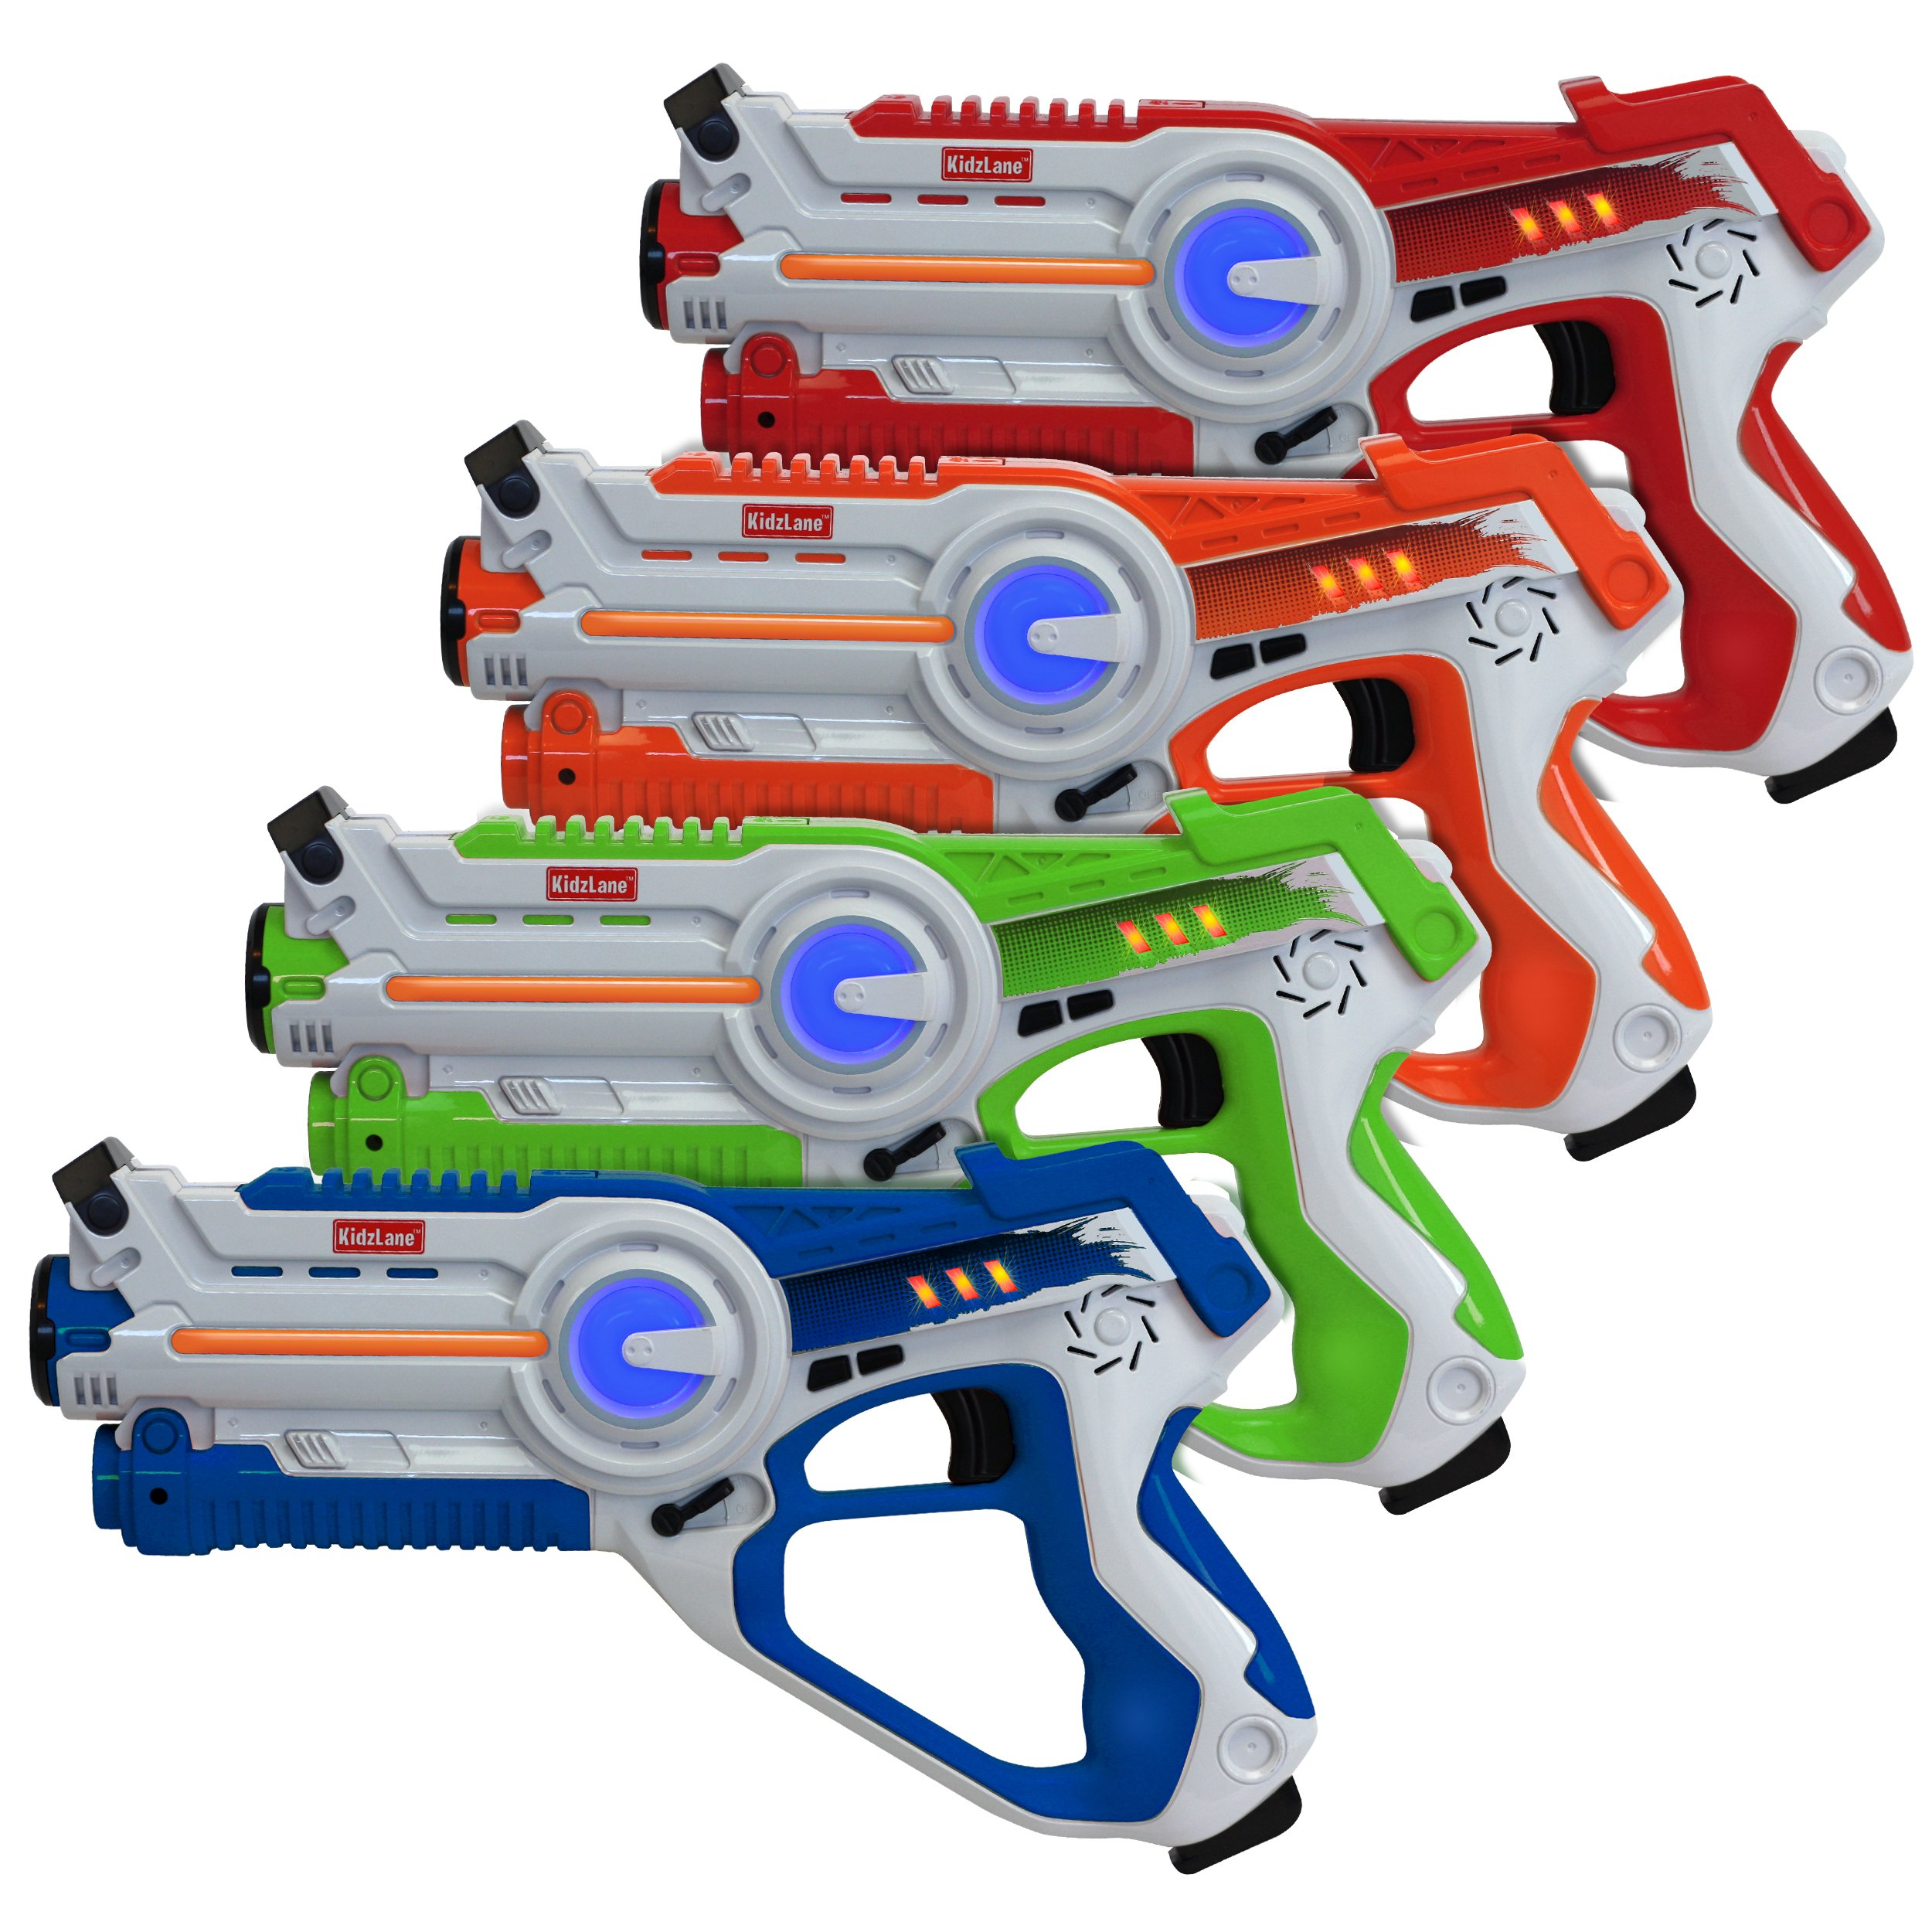 Kidzlane Infrared Laser Tag : Game Mega Pack - Set of 4 Players - Infrared Laser Gun Indoor and Outdoor Group Activity Fun. Infrared 0.9mW by Kidzlane